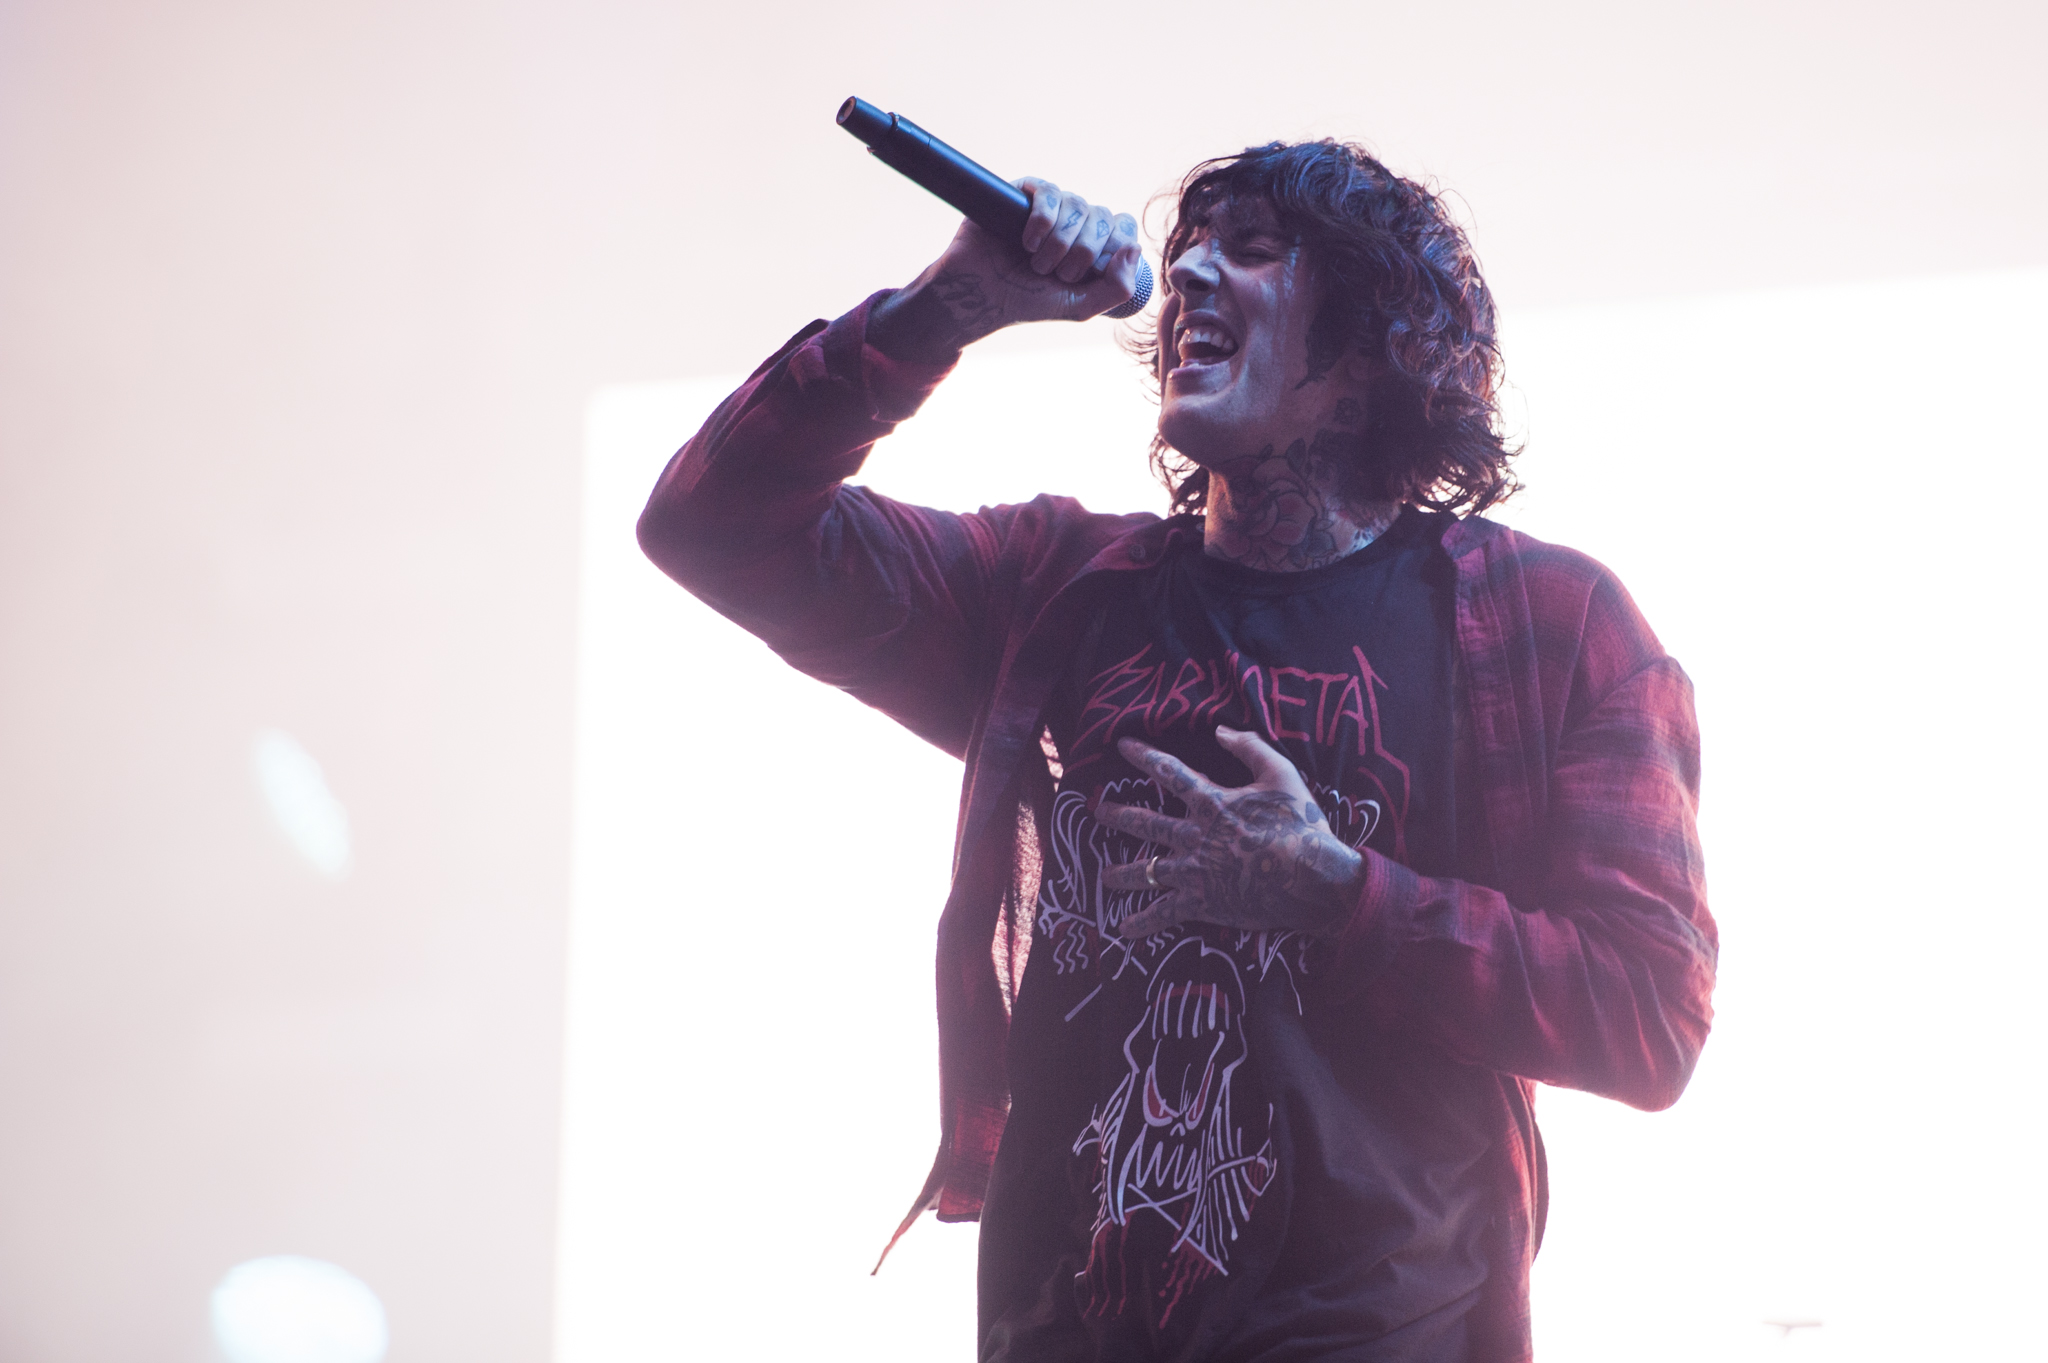 Bring Me The Horizon become future headliners in the making at Reading 2015